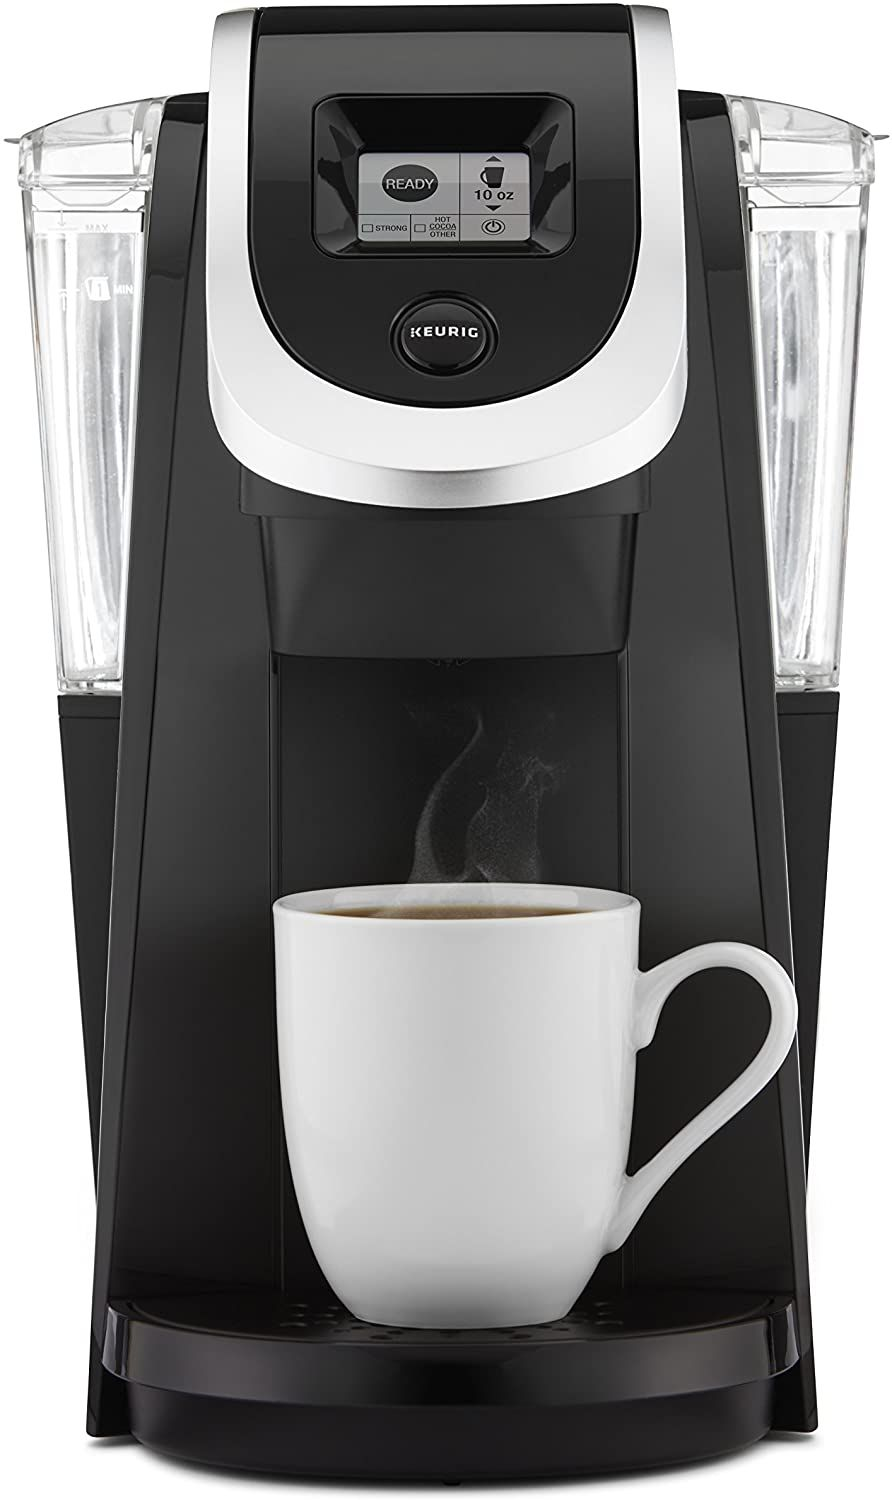 Top 9 Best Keurig Coffee Maker In 2020 Coffee Maker Machine Keurig Keurig Coffee Makers